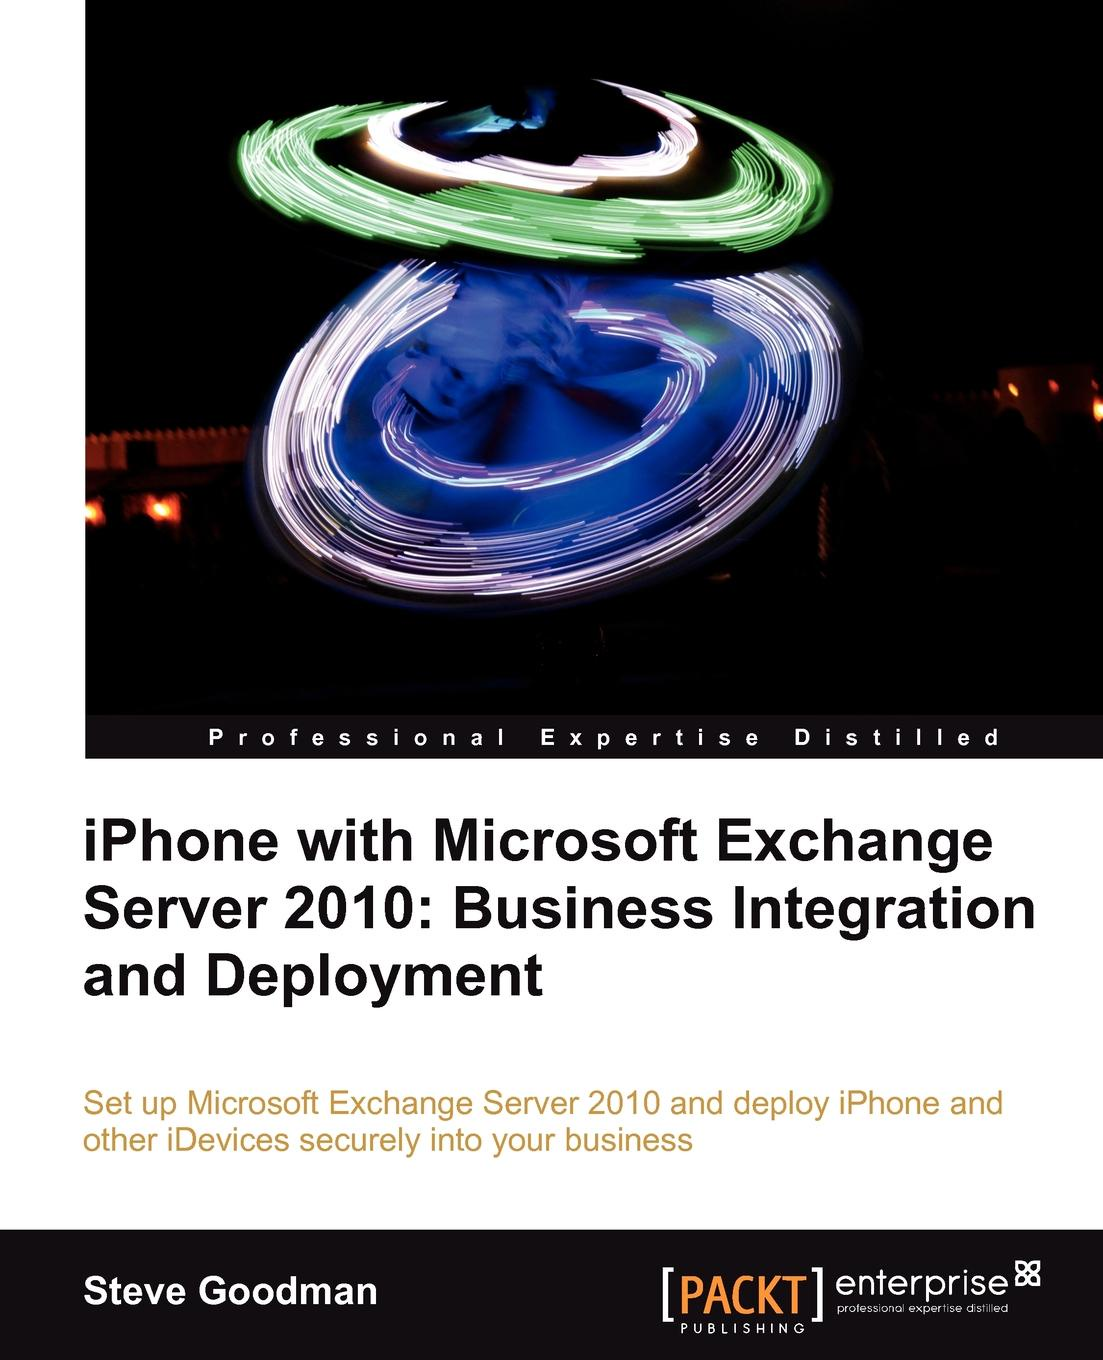 Steve Goodman iPhone with Microsoft Exchange Server 2010 - Business Integration and Deployment